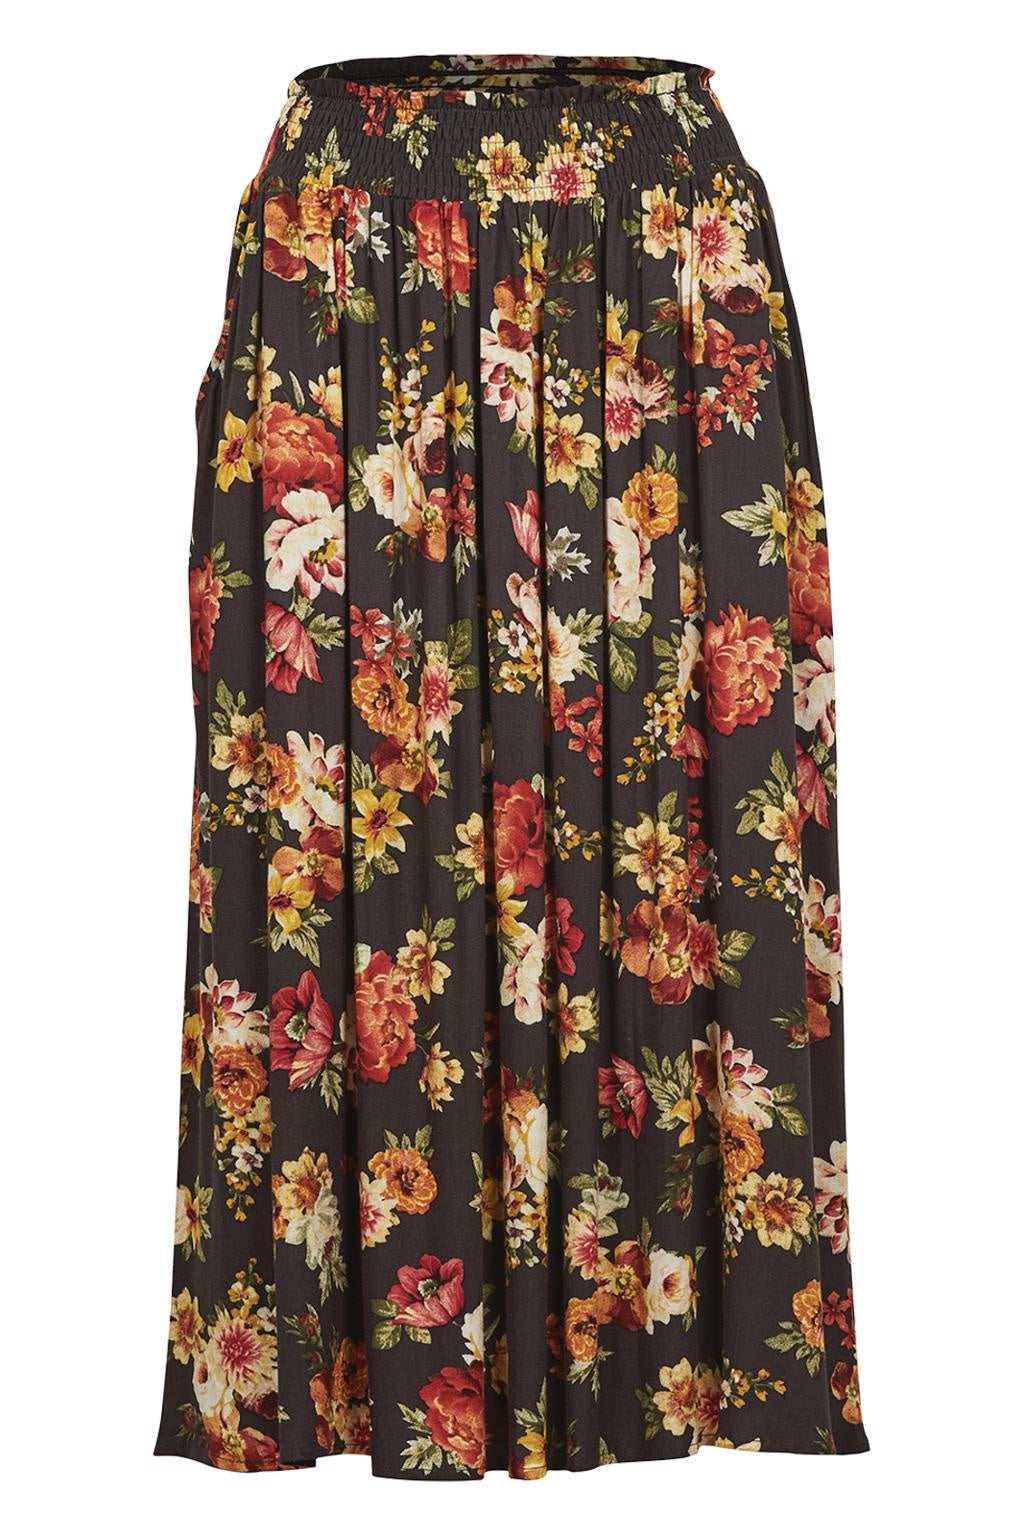 Dawn Skirt - Wildflower